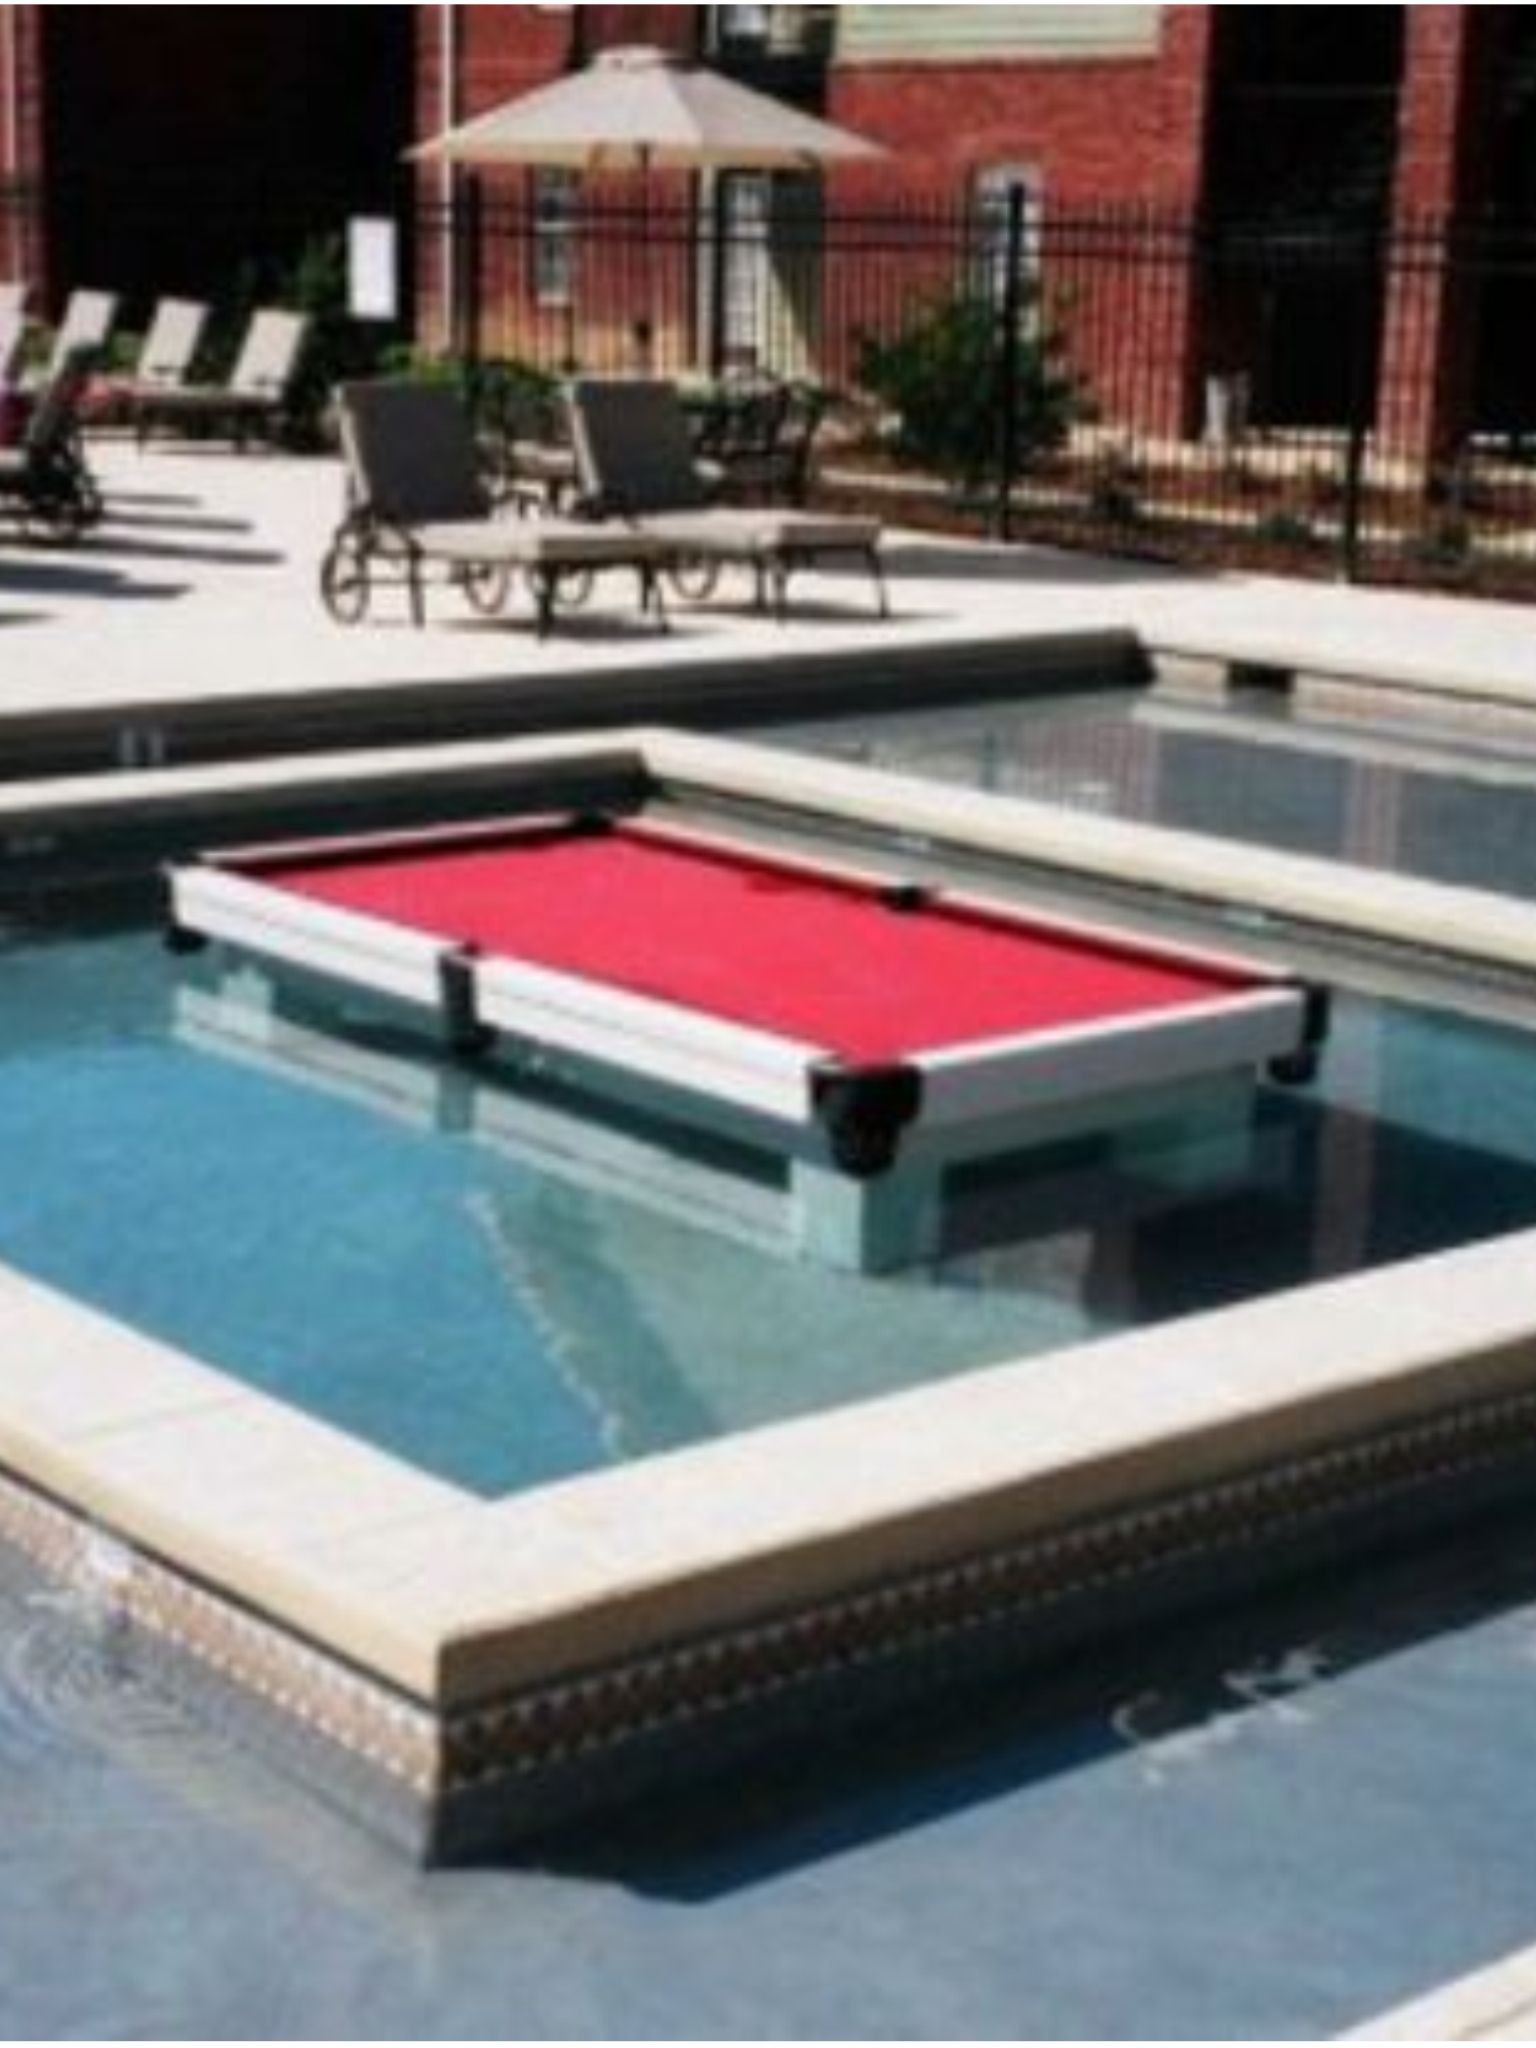 Superior Pool Table Inside A Pool